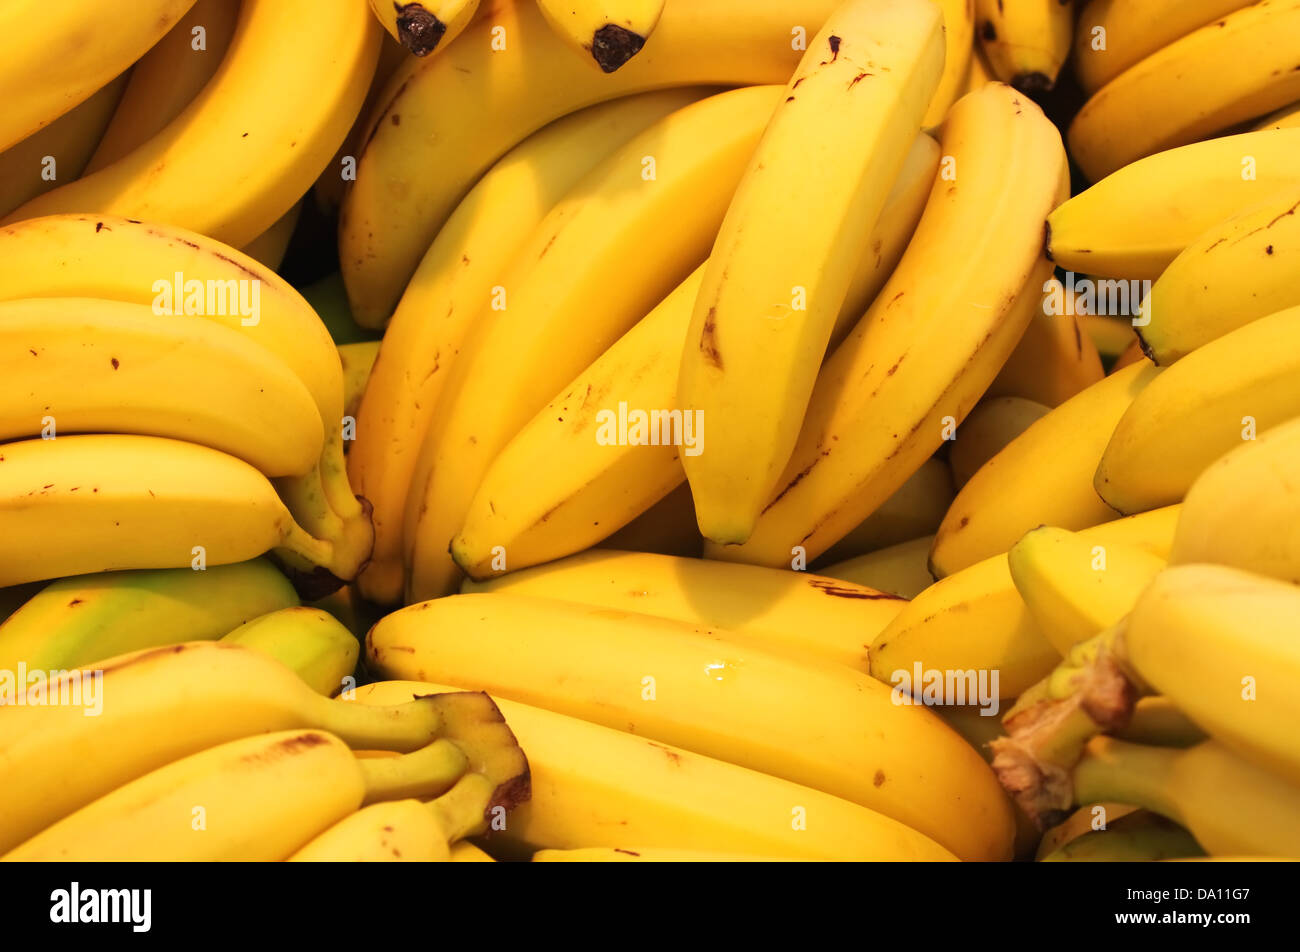 Bananas for sale in a greengrocery - Stock Image